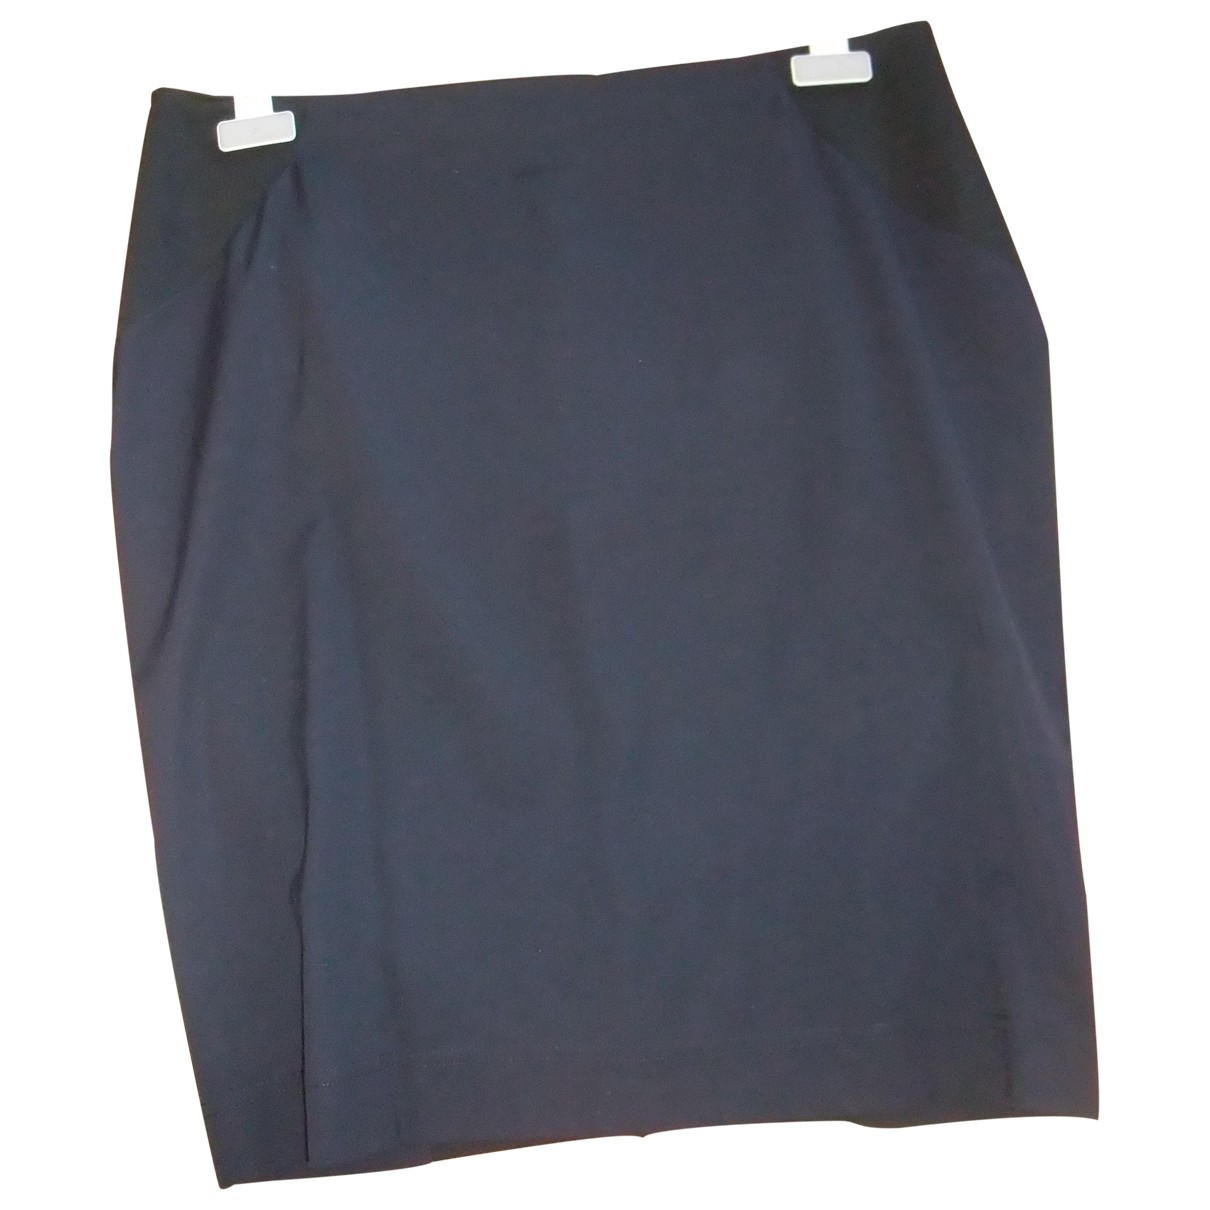 Paul Smith \N Black Cotton - elasthane skirt for Women 44 FR